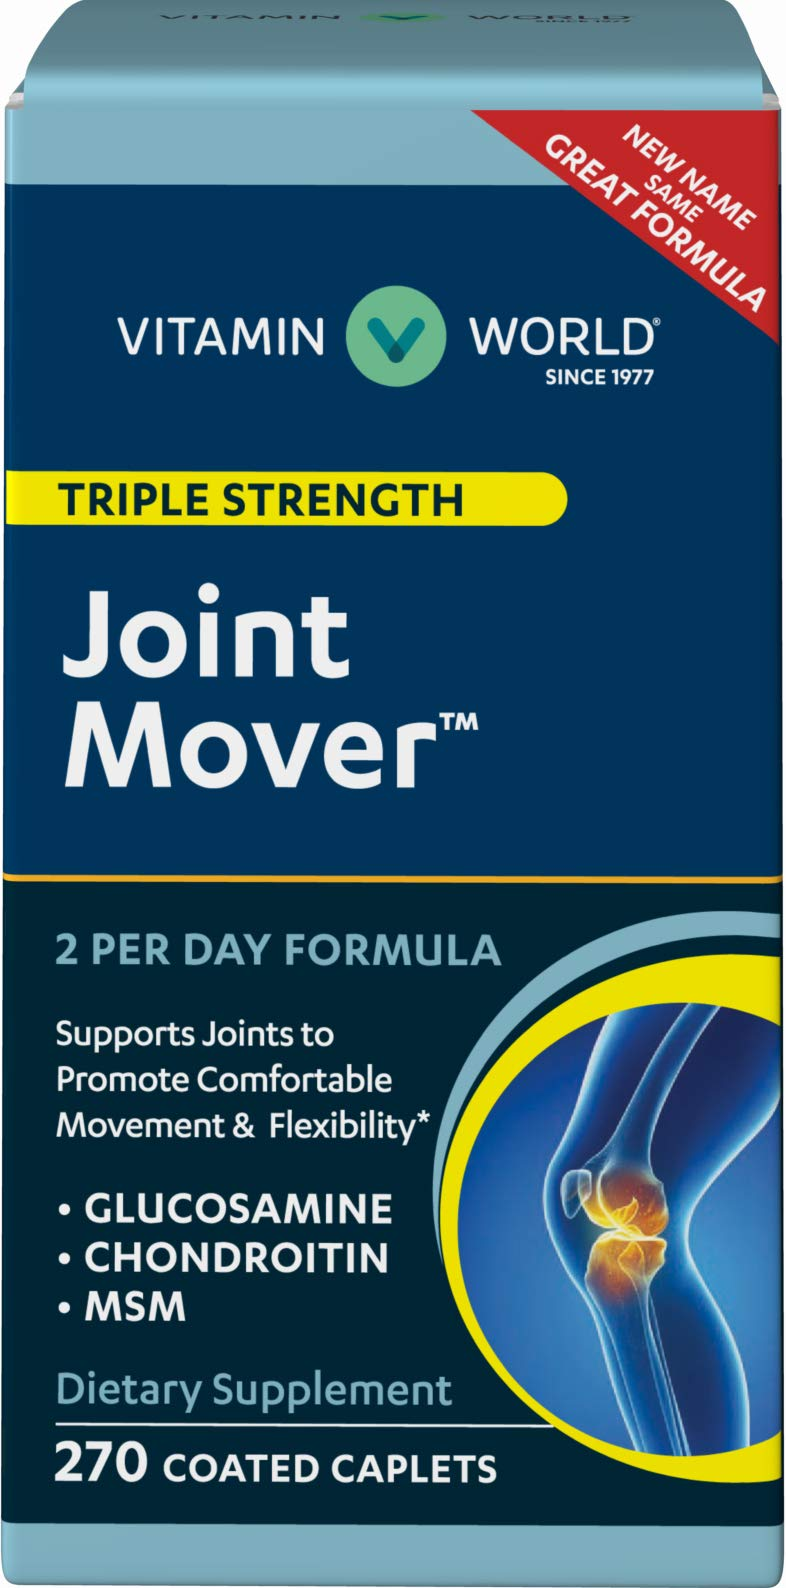 Vitamin World Triple Strength Joint Mover | Joint Support Nutritional Supplement | Feat. Glucosamine, MSM, Chondroitin to Support Joint Comfort and Flexibility, 270 Caplets by Vitamin World